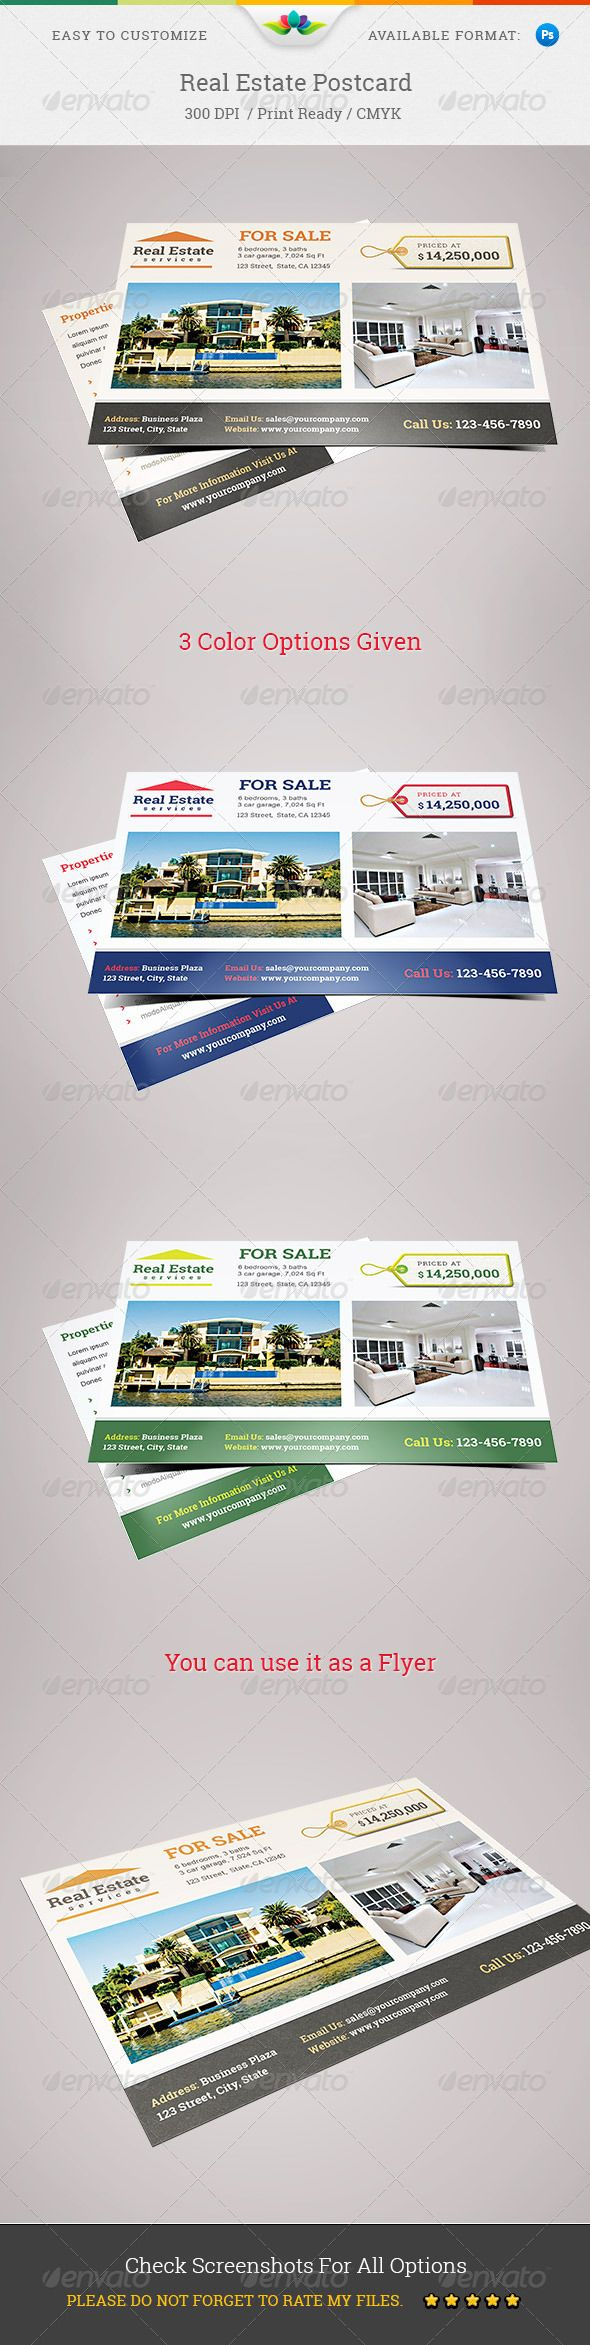 Real Estate Postcard | Stationery printing, Real estate and Print ...